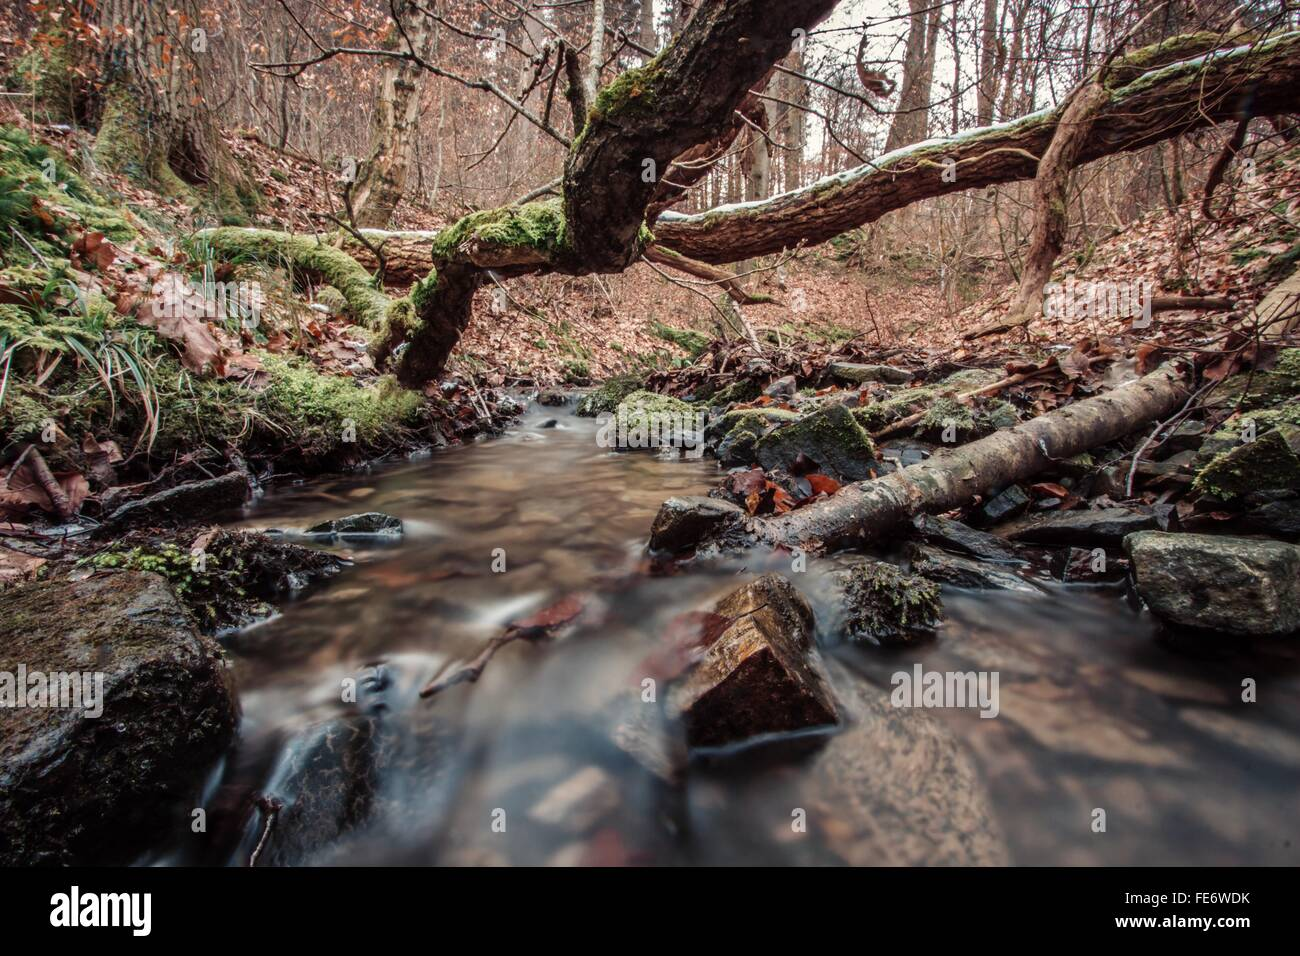 Stream And Fallen Trees In Forest - Stock Image